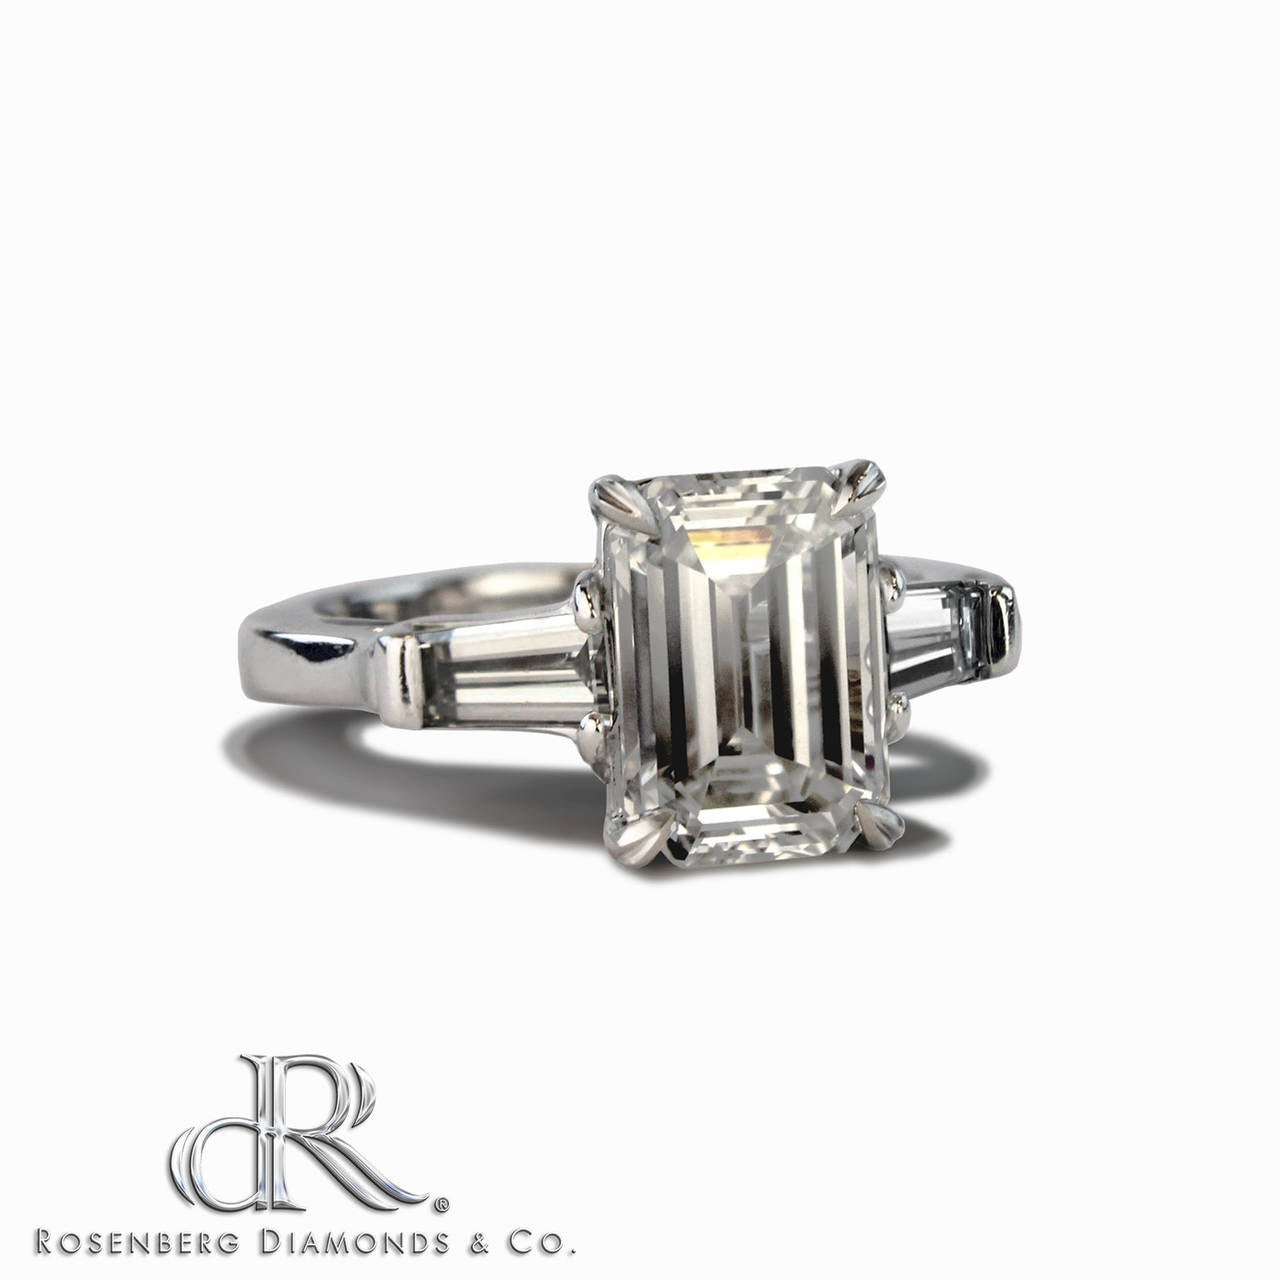 Enchanting 3 02 Carat Emerald Cut Diamond Platinum Engagement Ring at 1stdibs